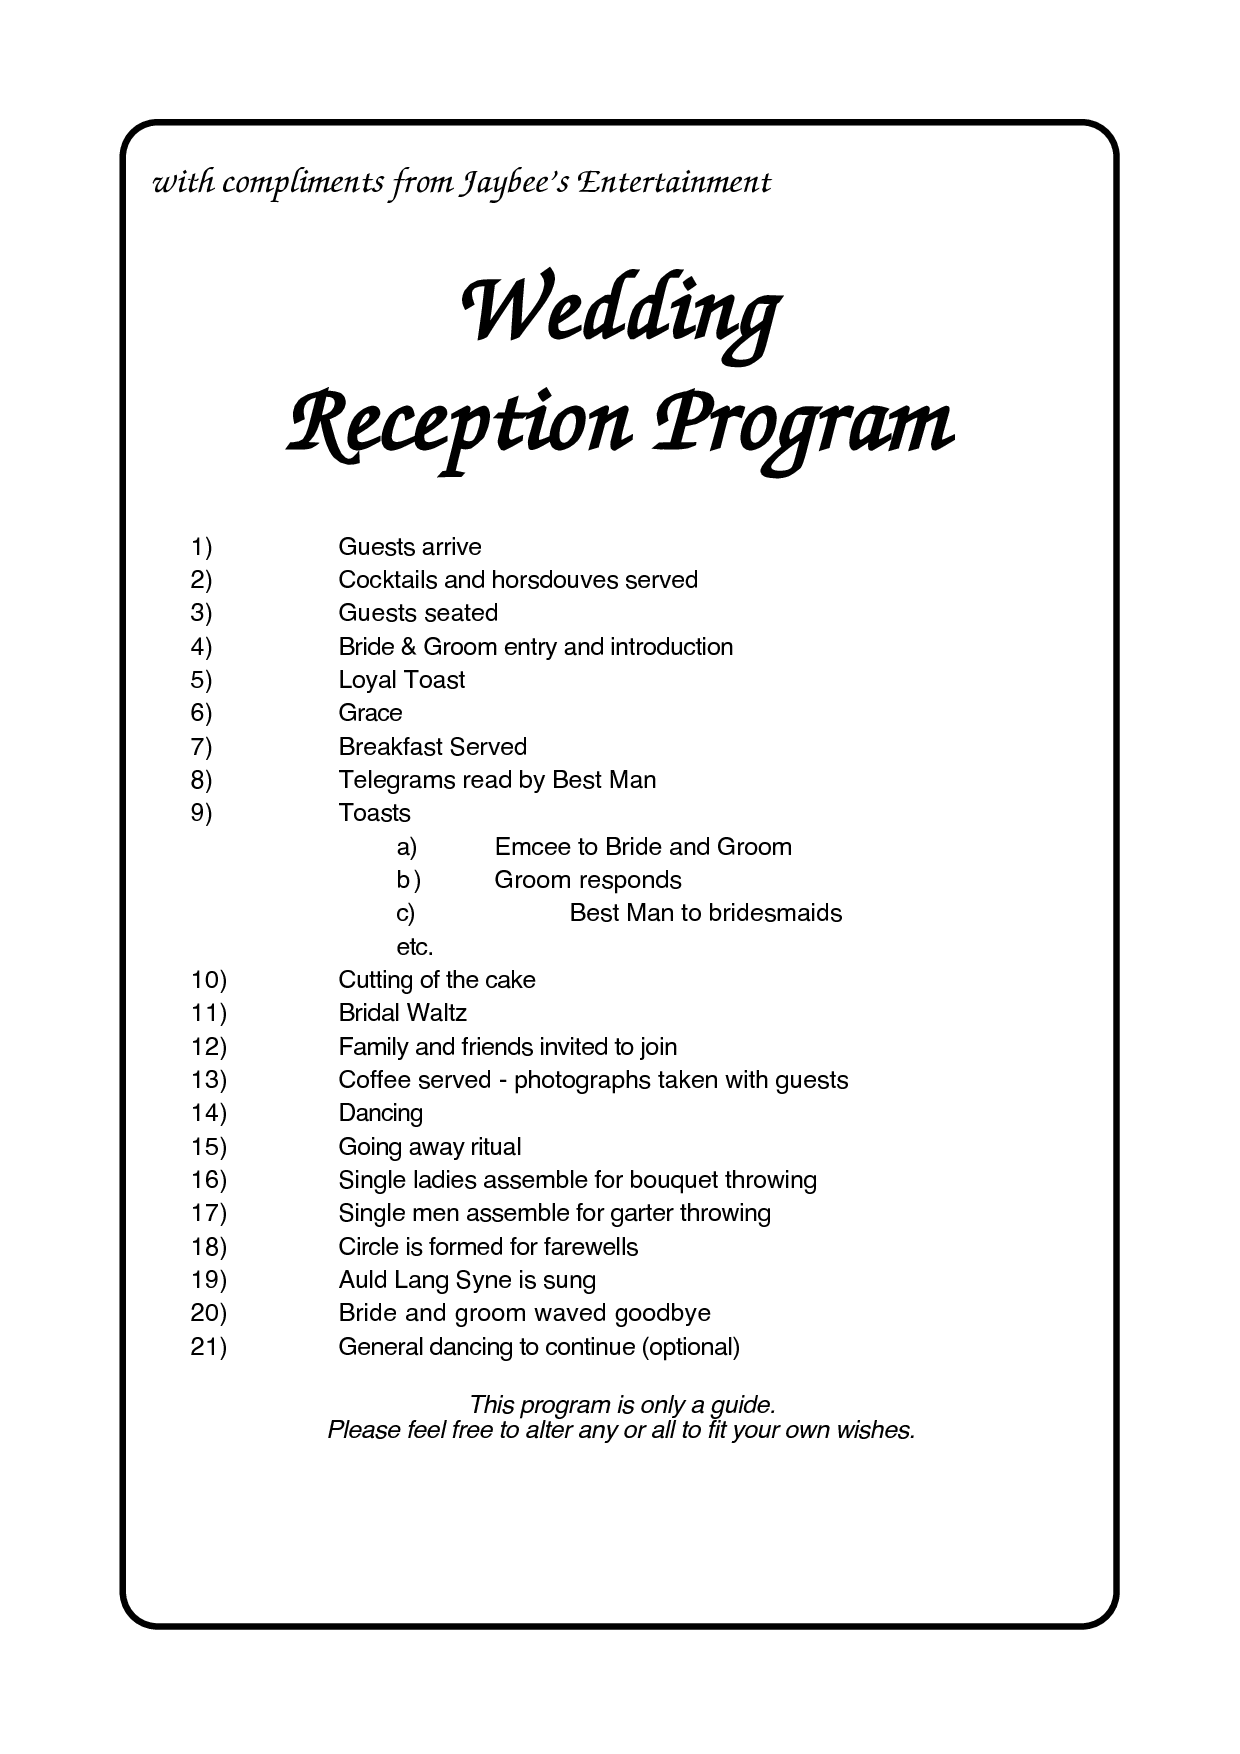 Wedding Program Order Of Reception Jaybee S Entertainment